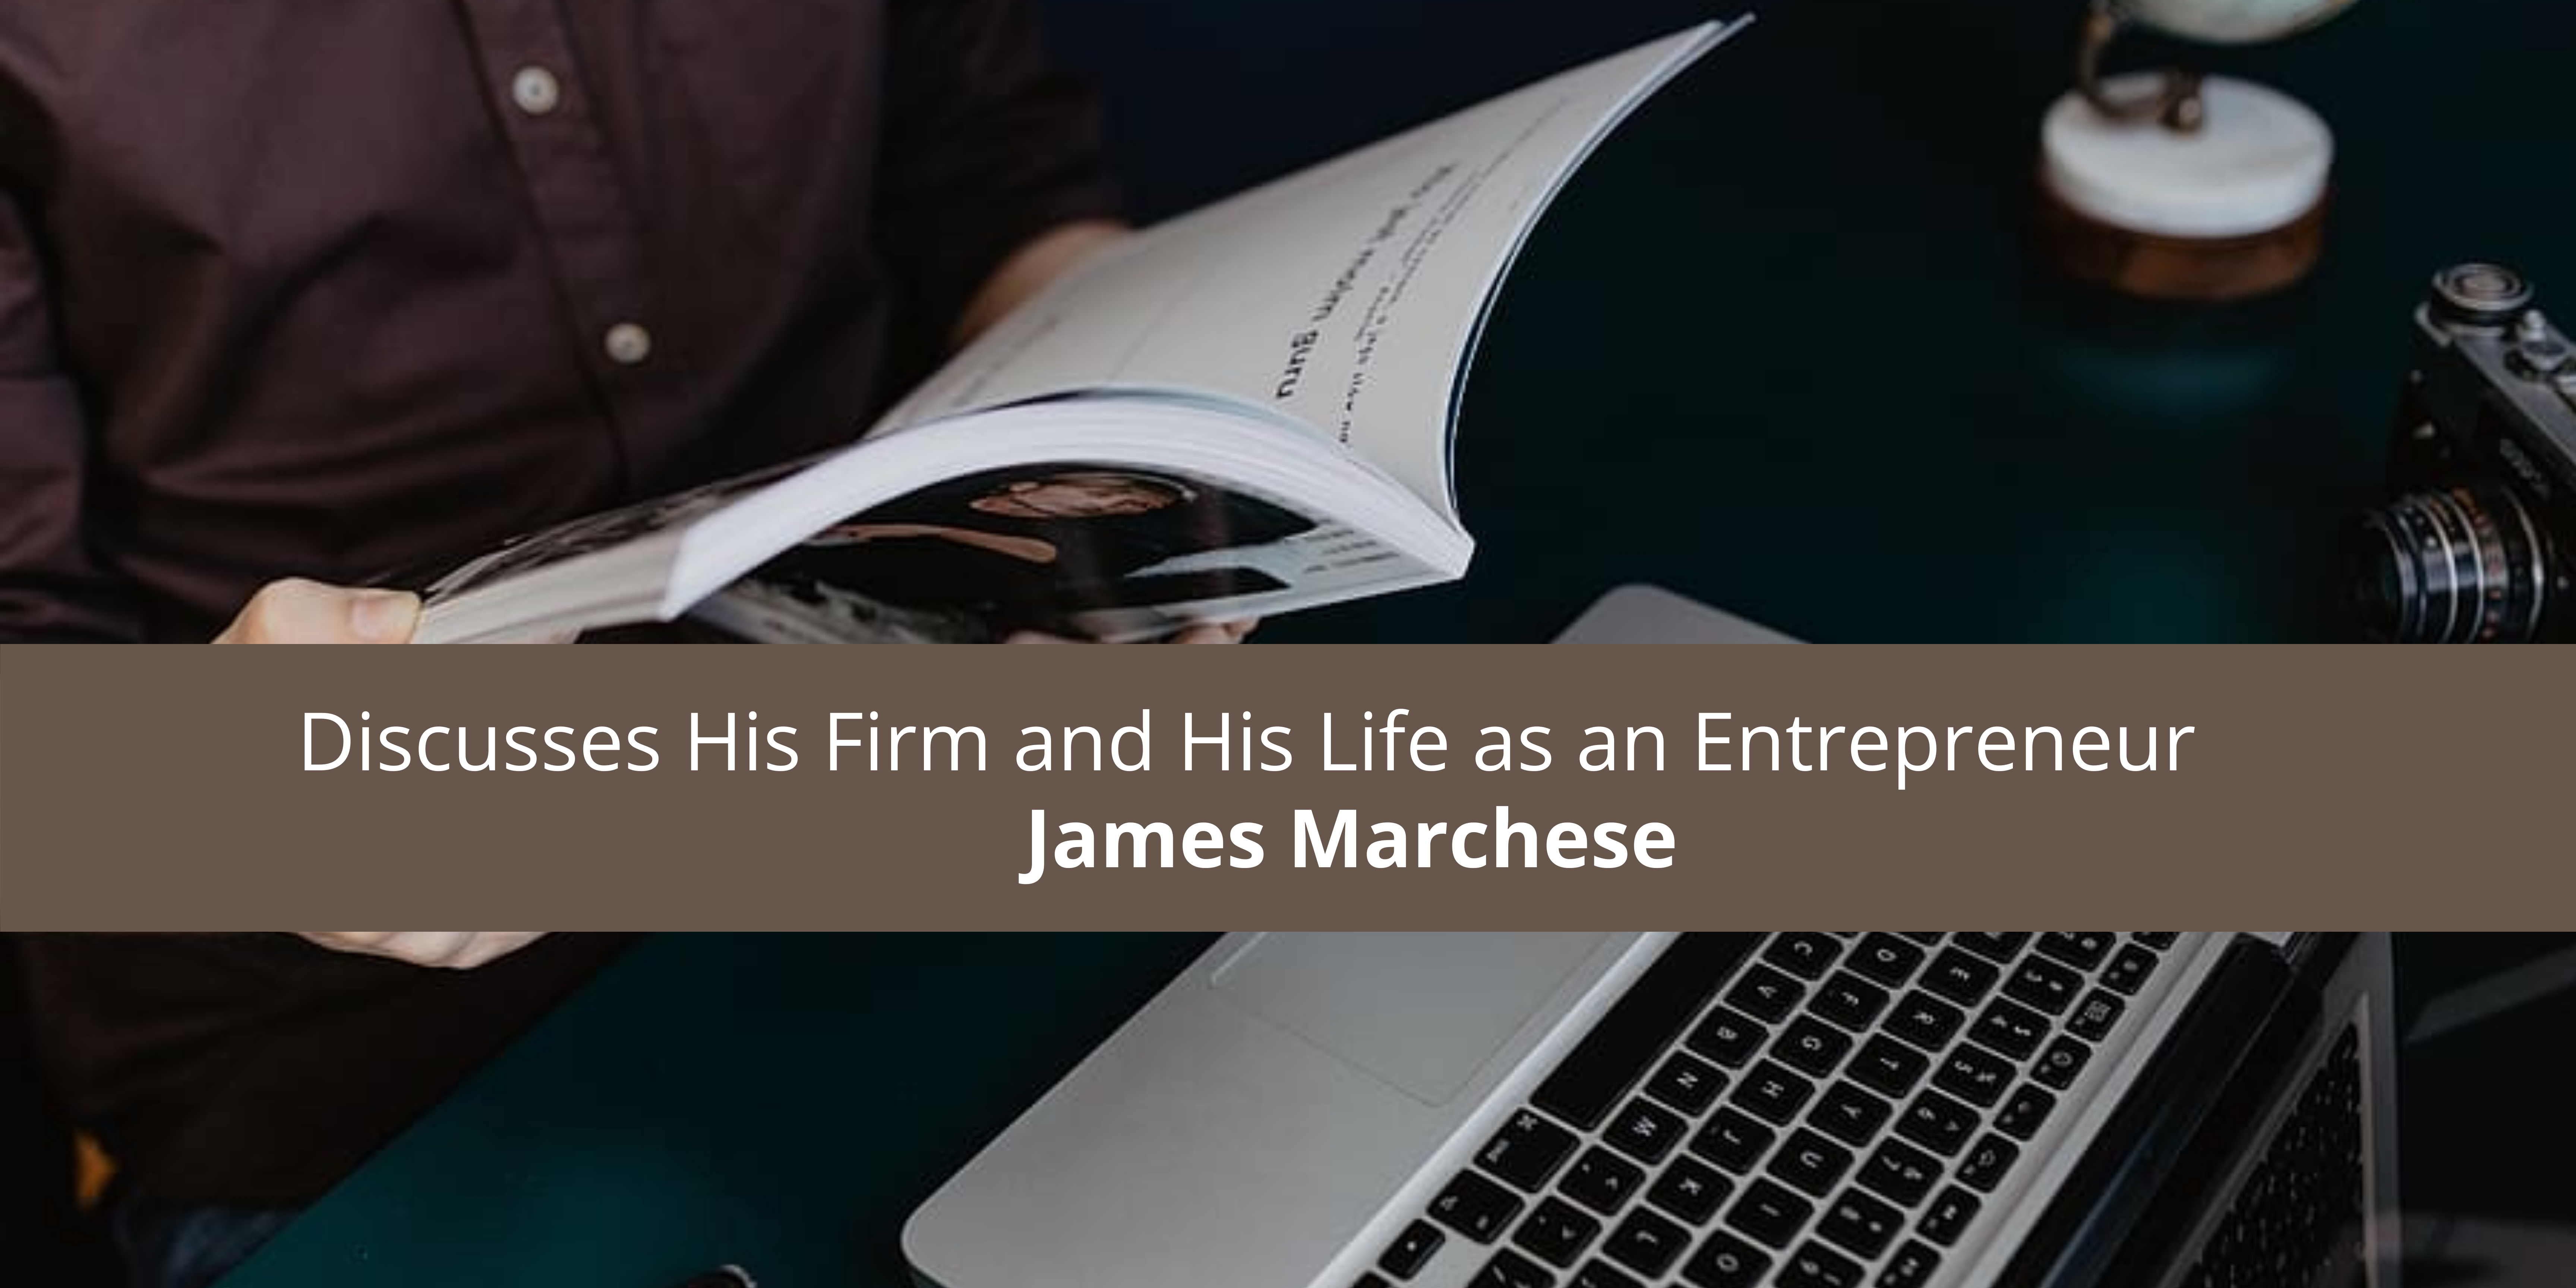 James Marchese of MortgageNOW and His Life as an Entrepreneur